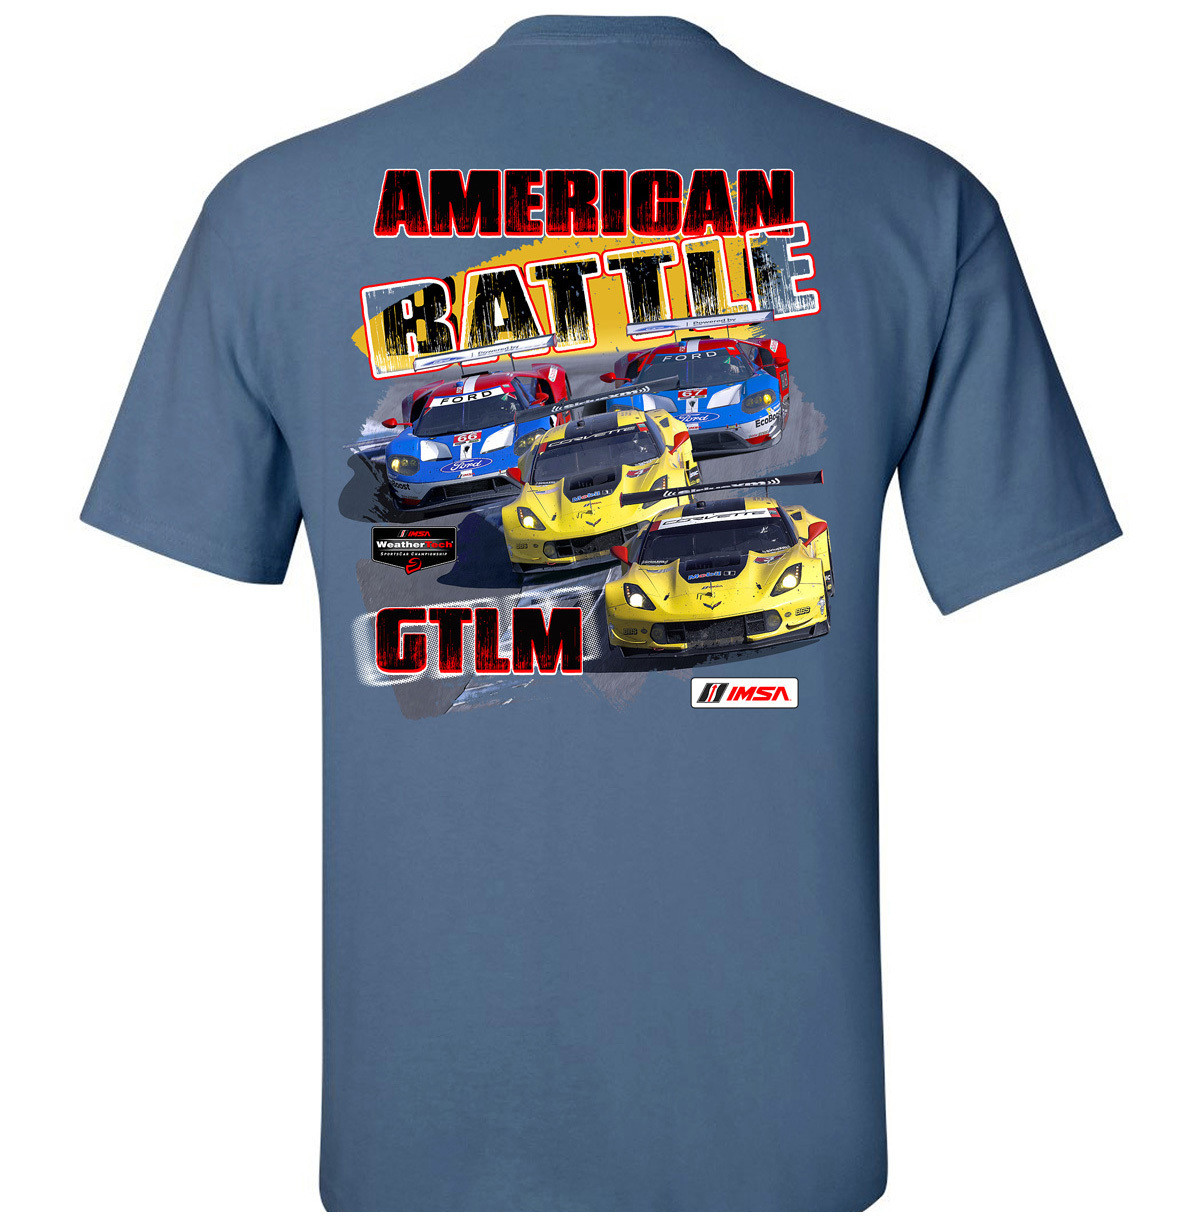 American Battle - Chevy vs. Ford Tee - Heather Indigo